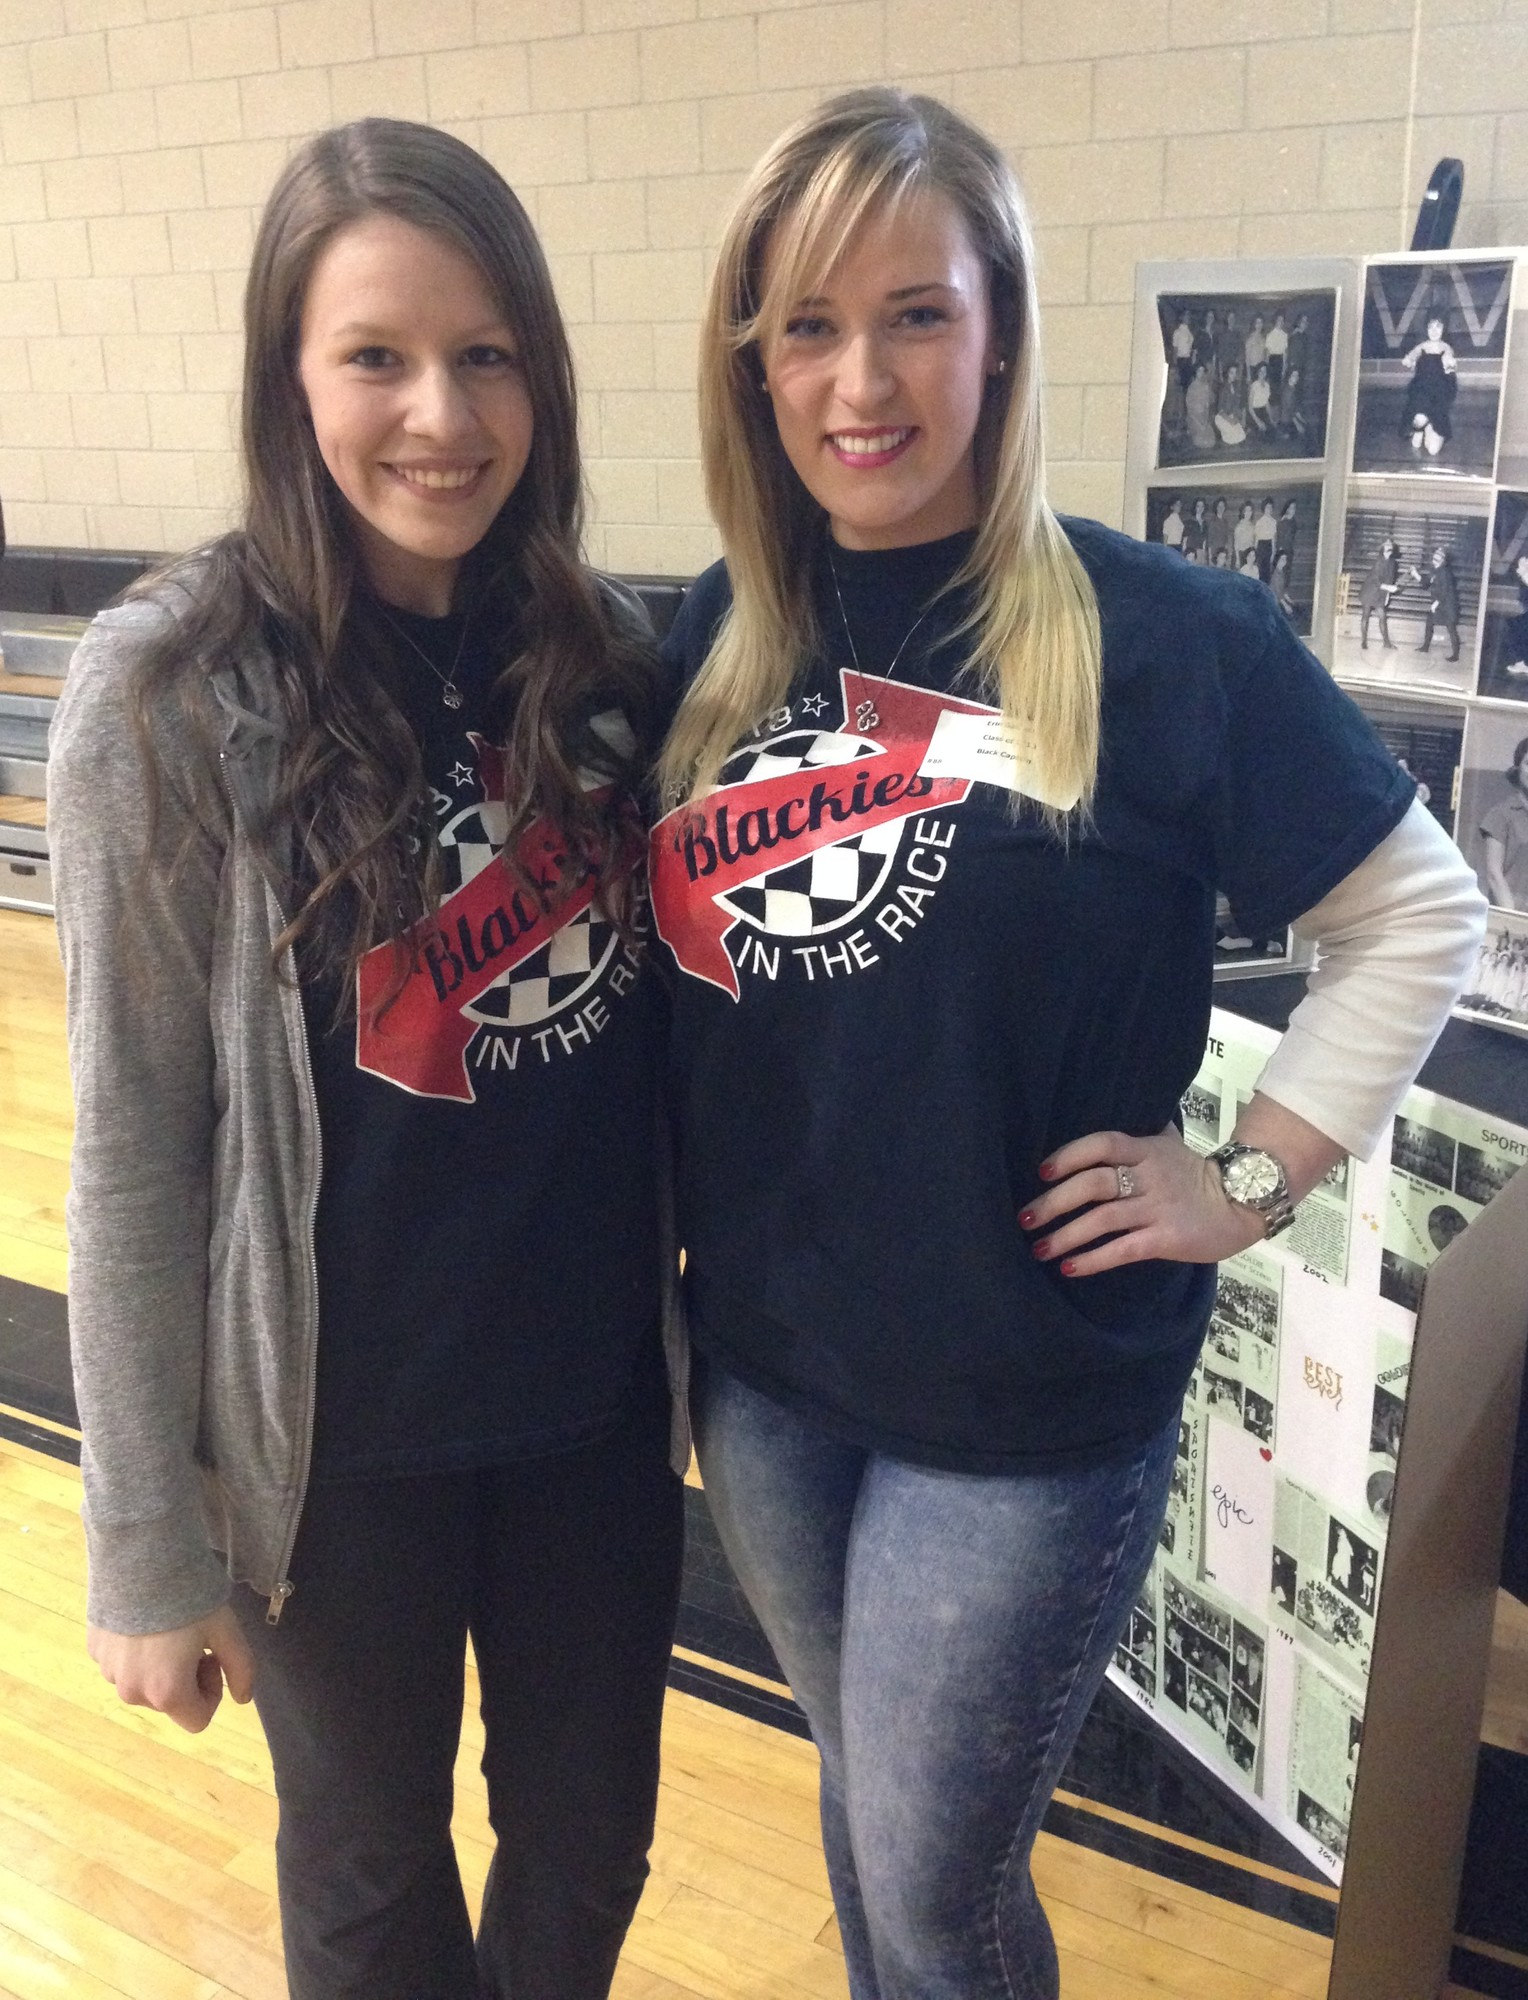 Grace Hostetter and Erin Gallagher, who captained the Black team in 2013, stood near some of the old photos on display.